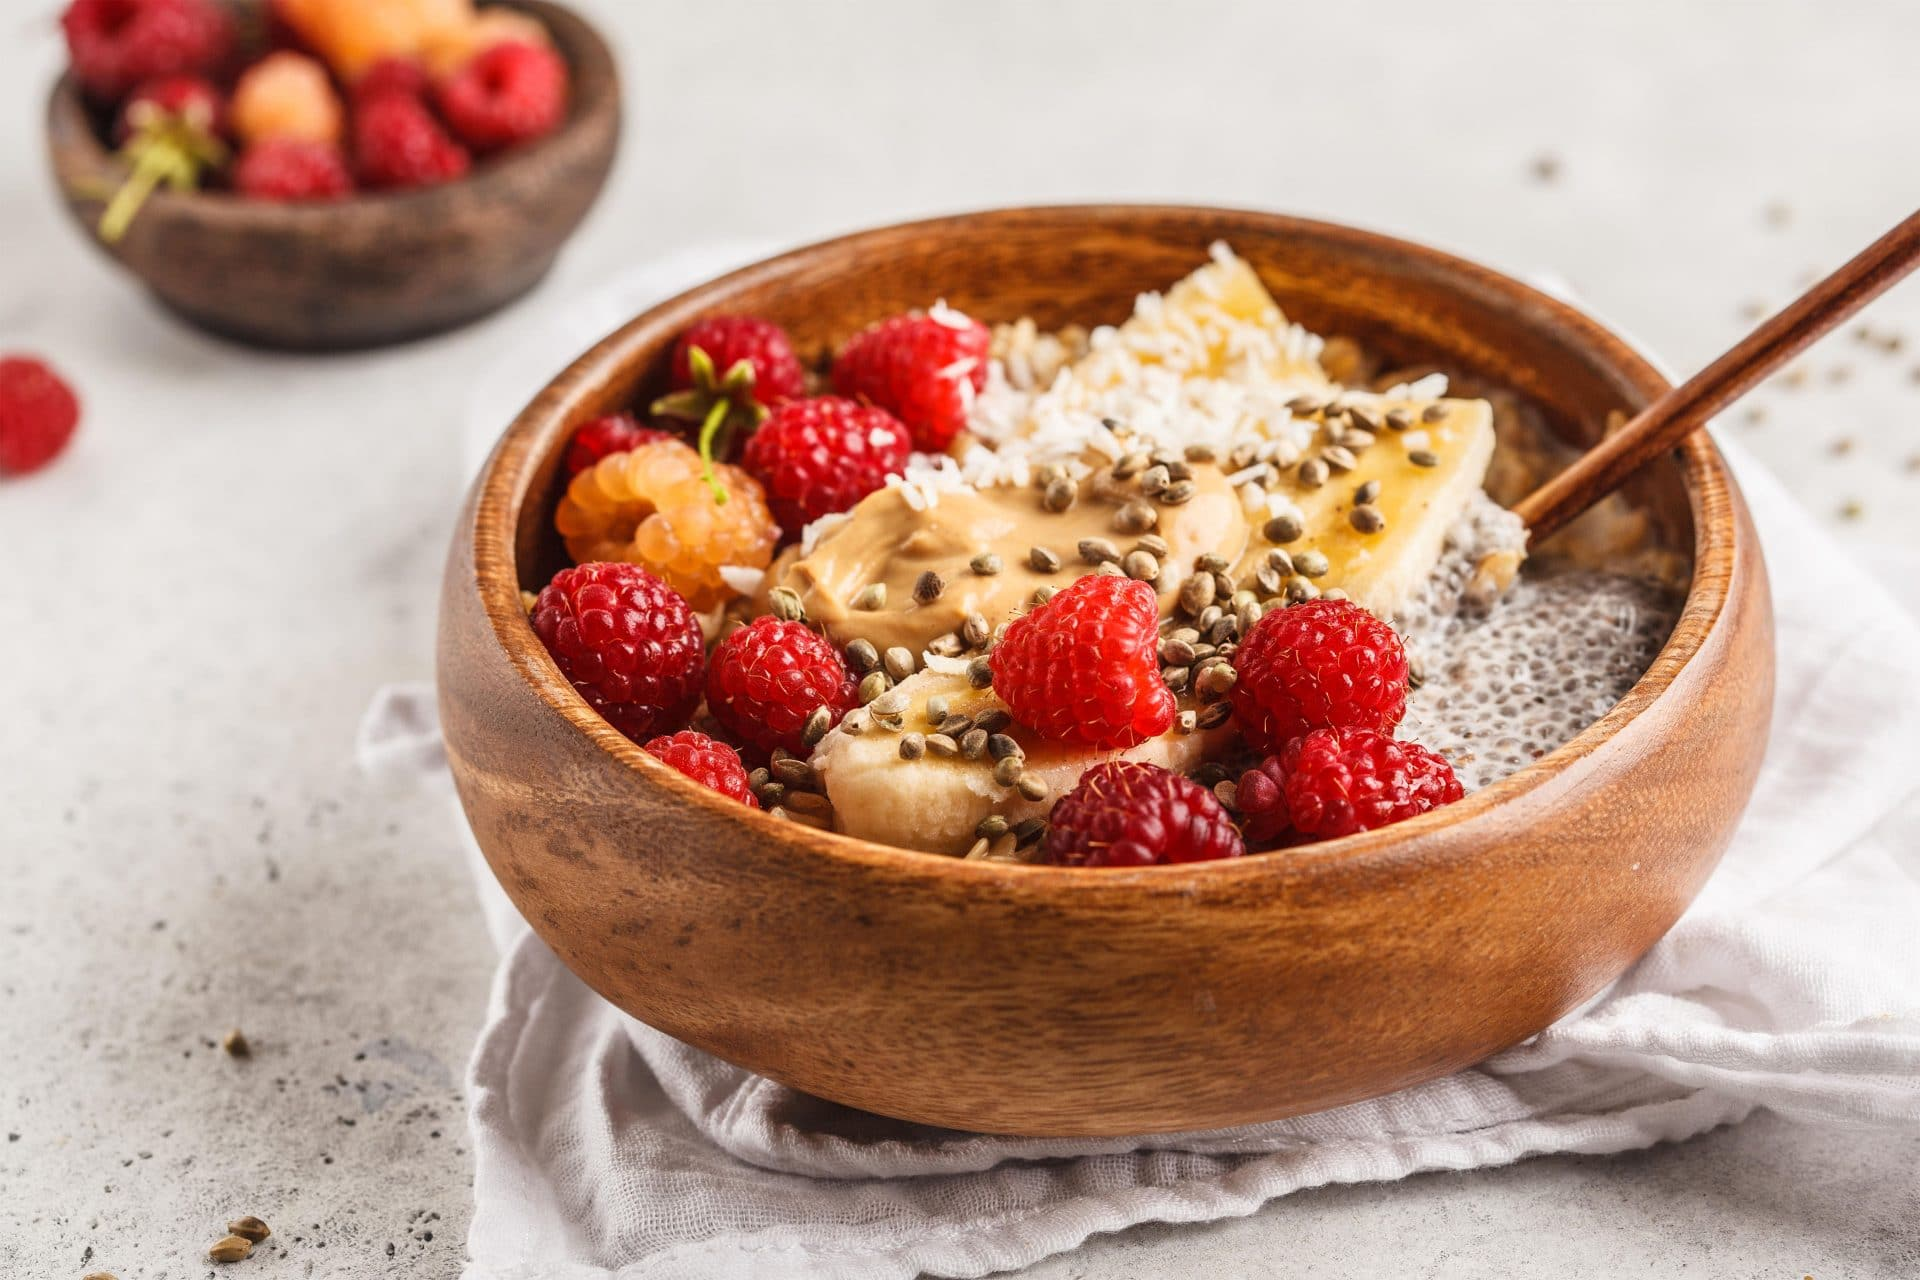 Porridge with fruit, peanut butter and hemp seeds